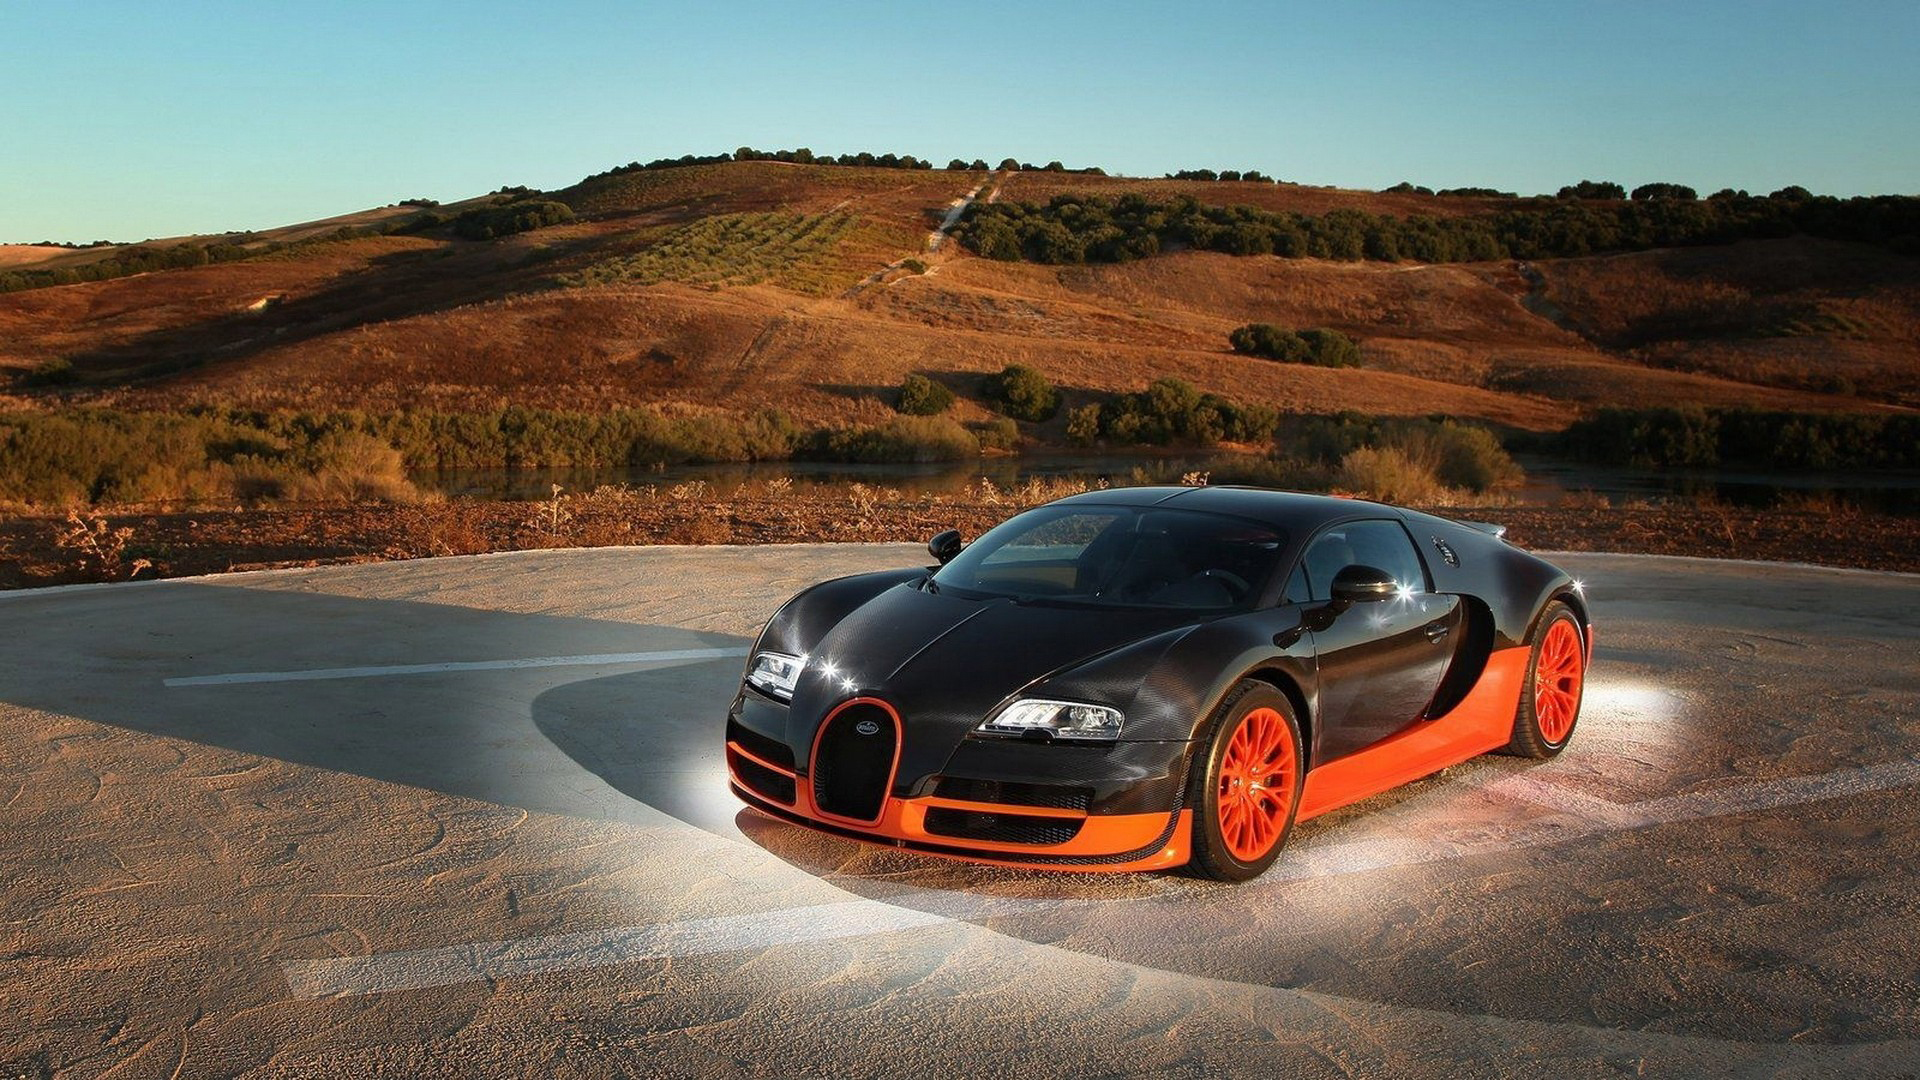 50 cool bugatti wallpapers/backgrounds for free download